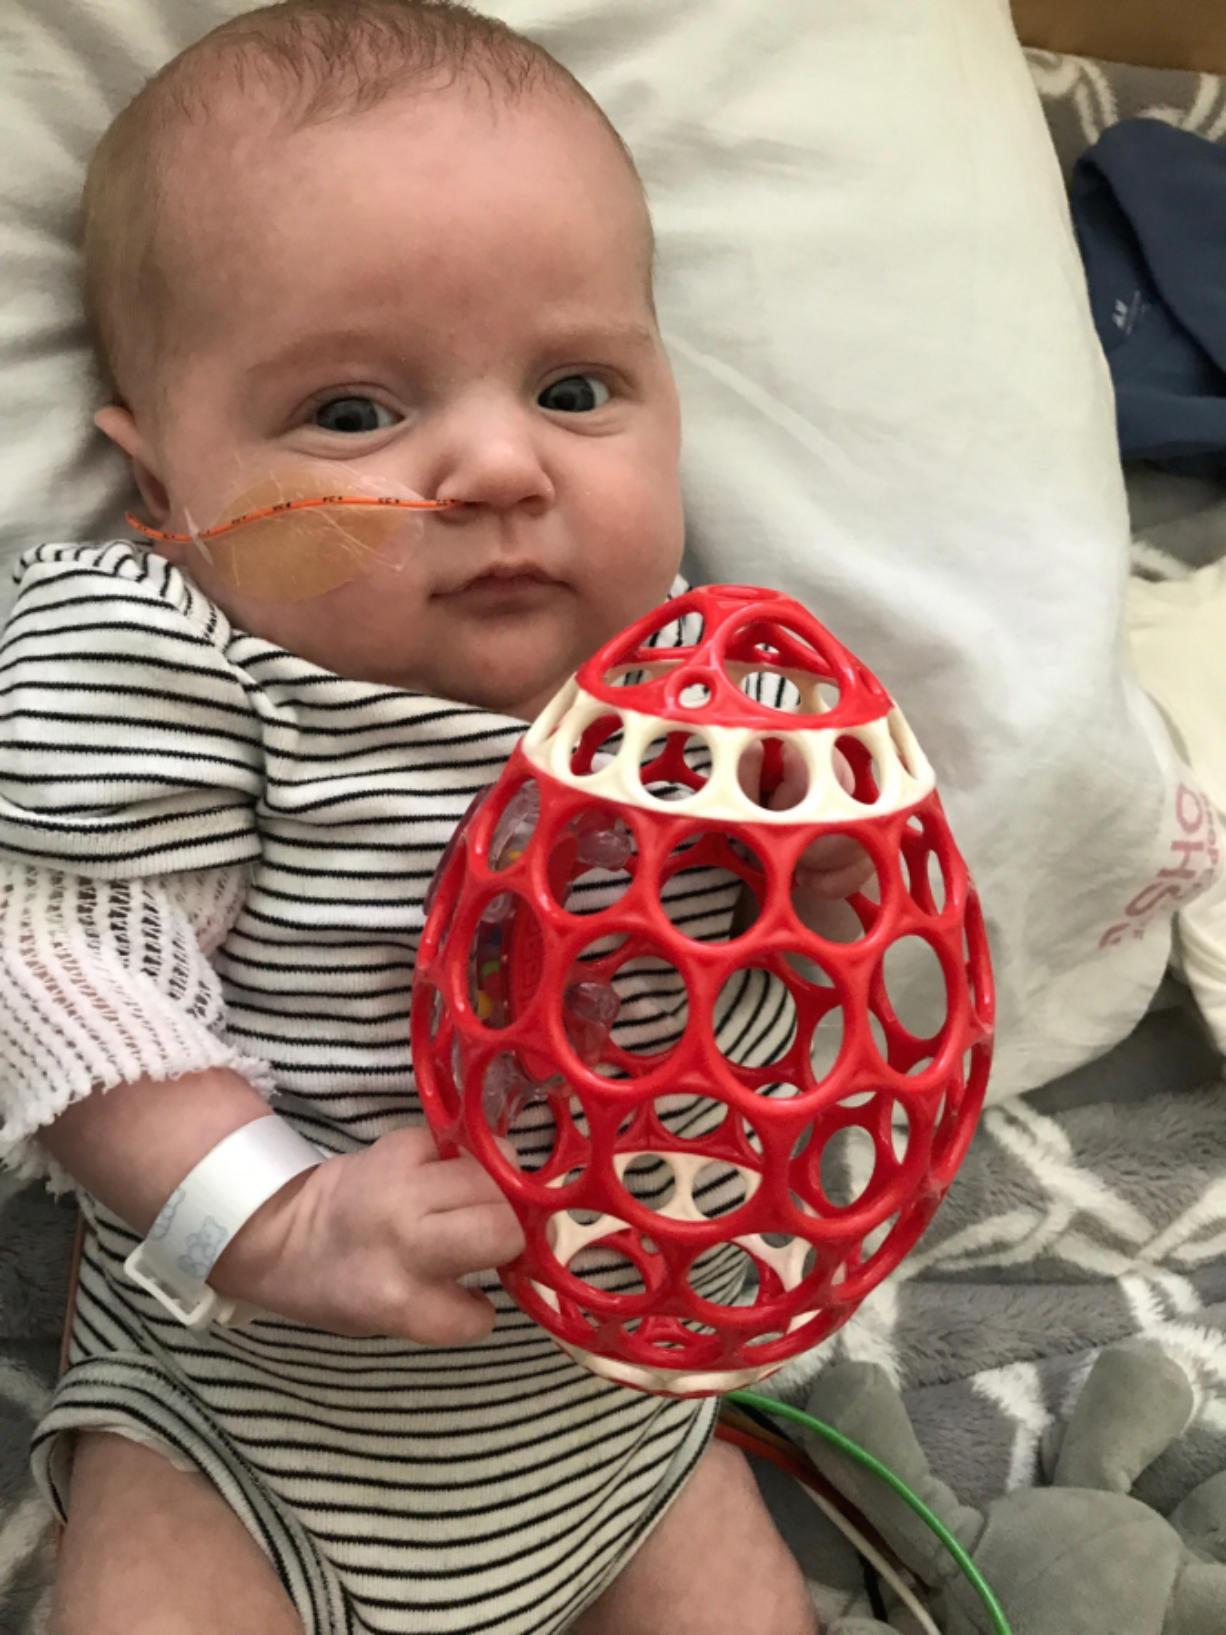 Hudson Lail underwent surgery for a congenital heart defect when he was 1 week old. He spent much of his short life in Doernbecher Children's Hospital in Portland.